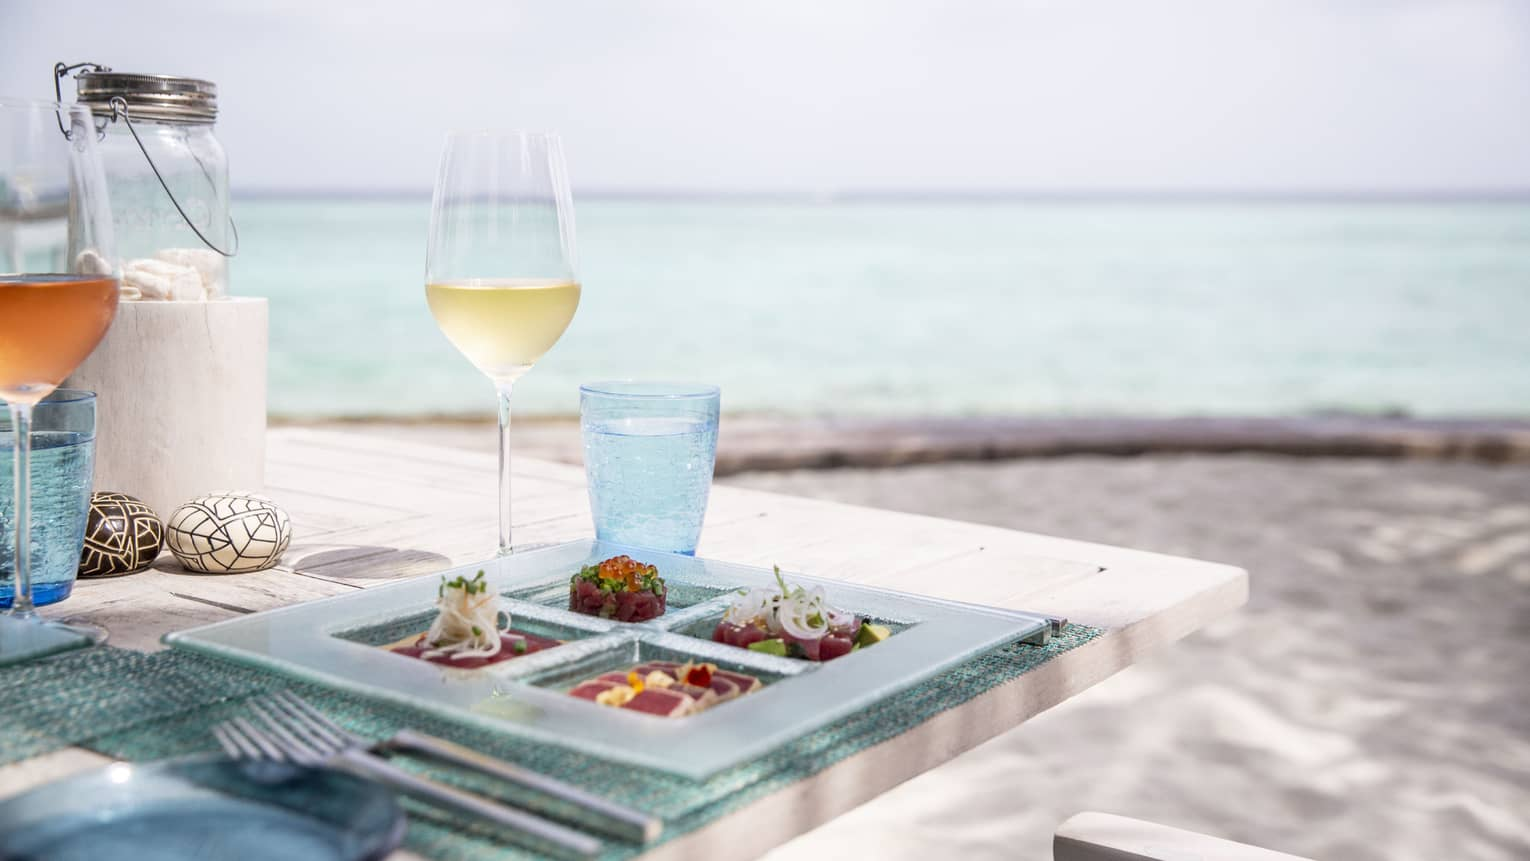 A tasetfully set table with a glass of white wine and rose overlooking the ocean at Fuego Grill